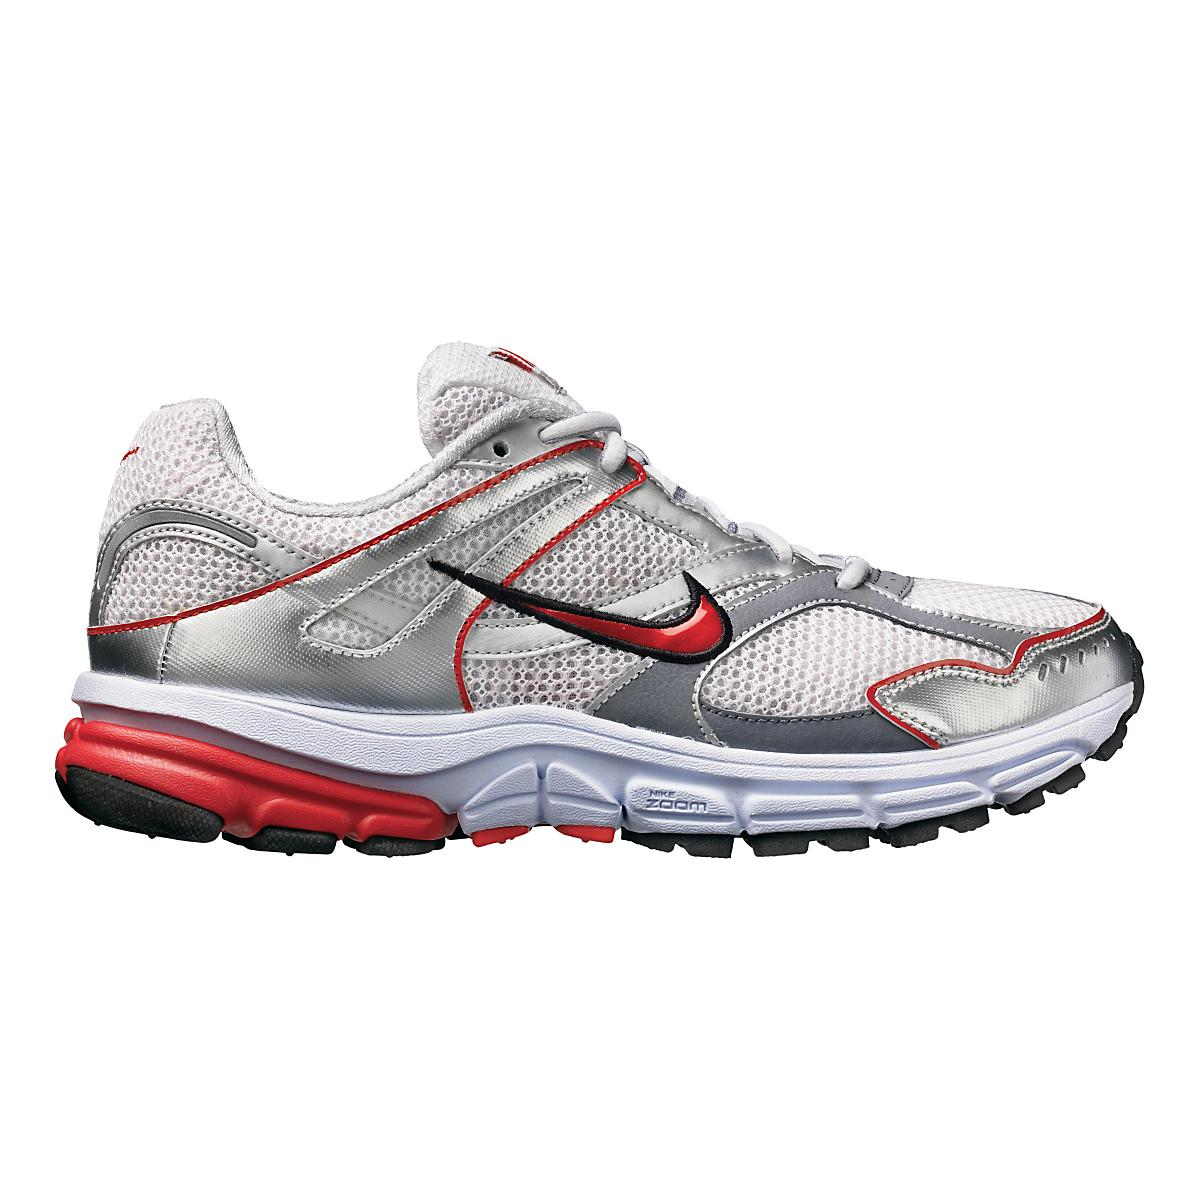 new product 0d1cc 76444 Womens Nike Zoom Structure Triax+ 13 Running Shoe at Road Runner Sports